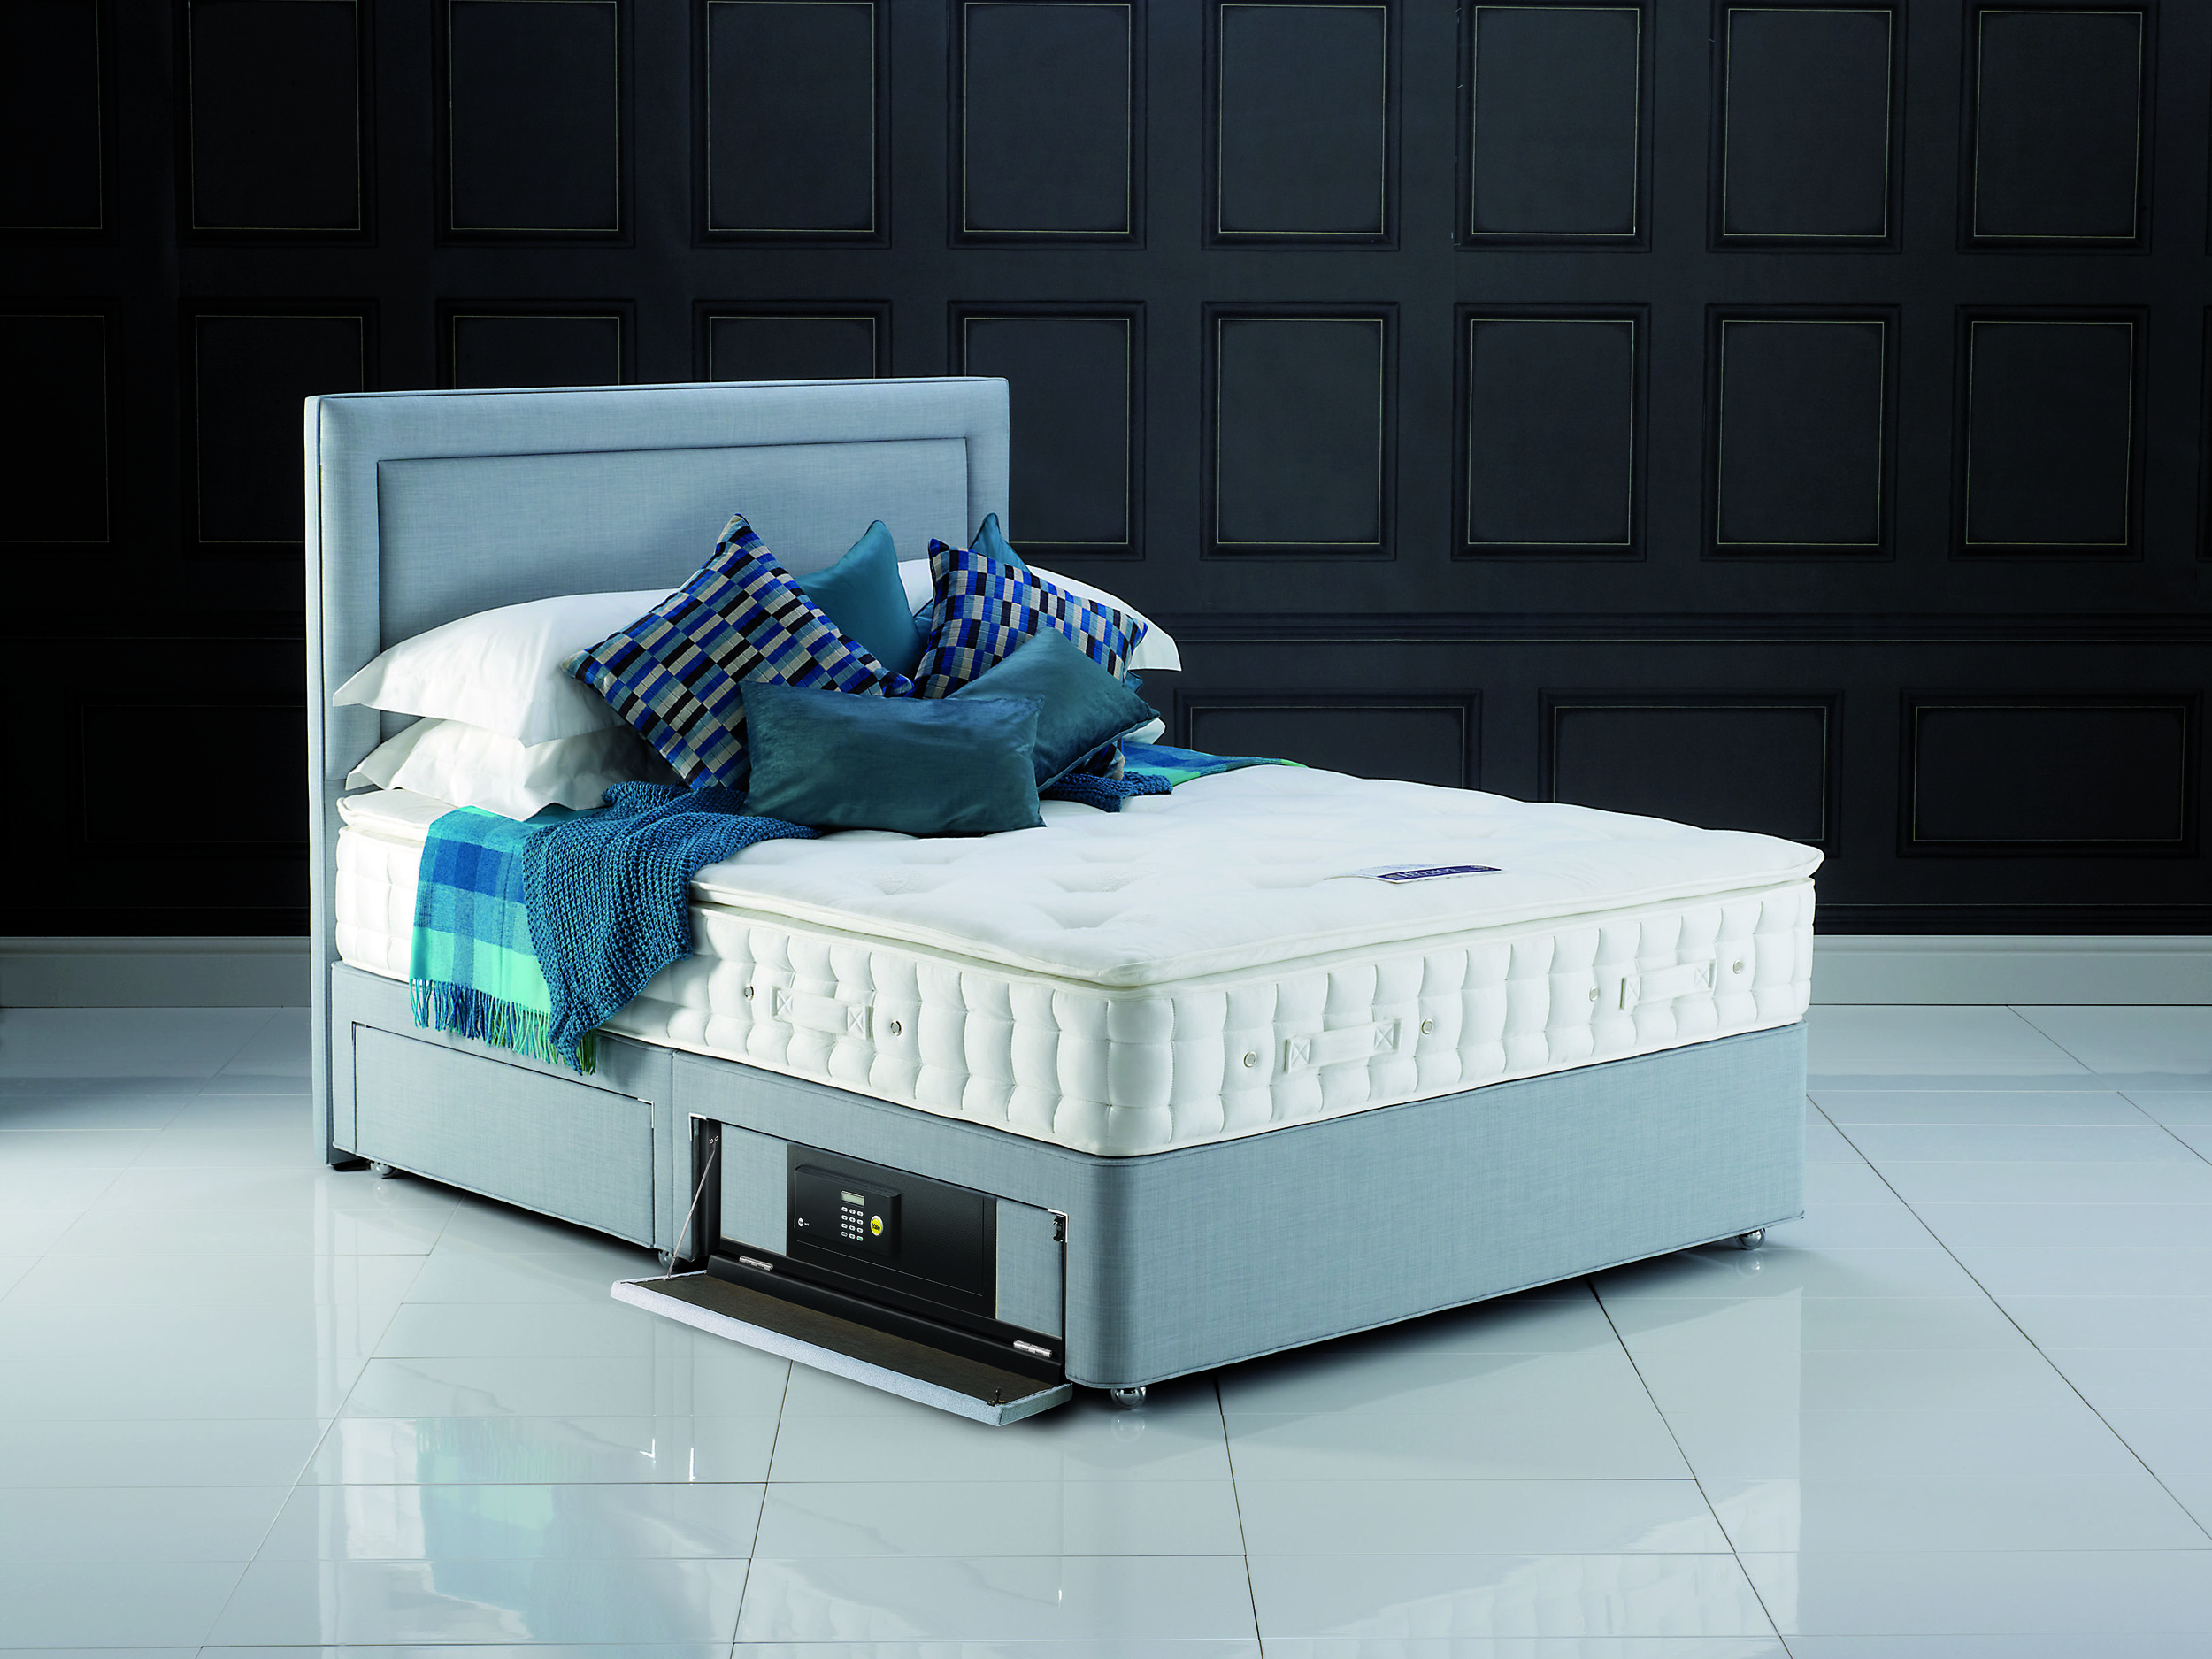 Hypnos PillowTop Pearl with Safe.jpg